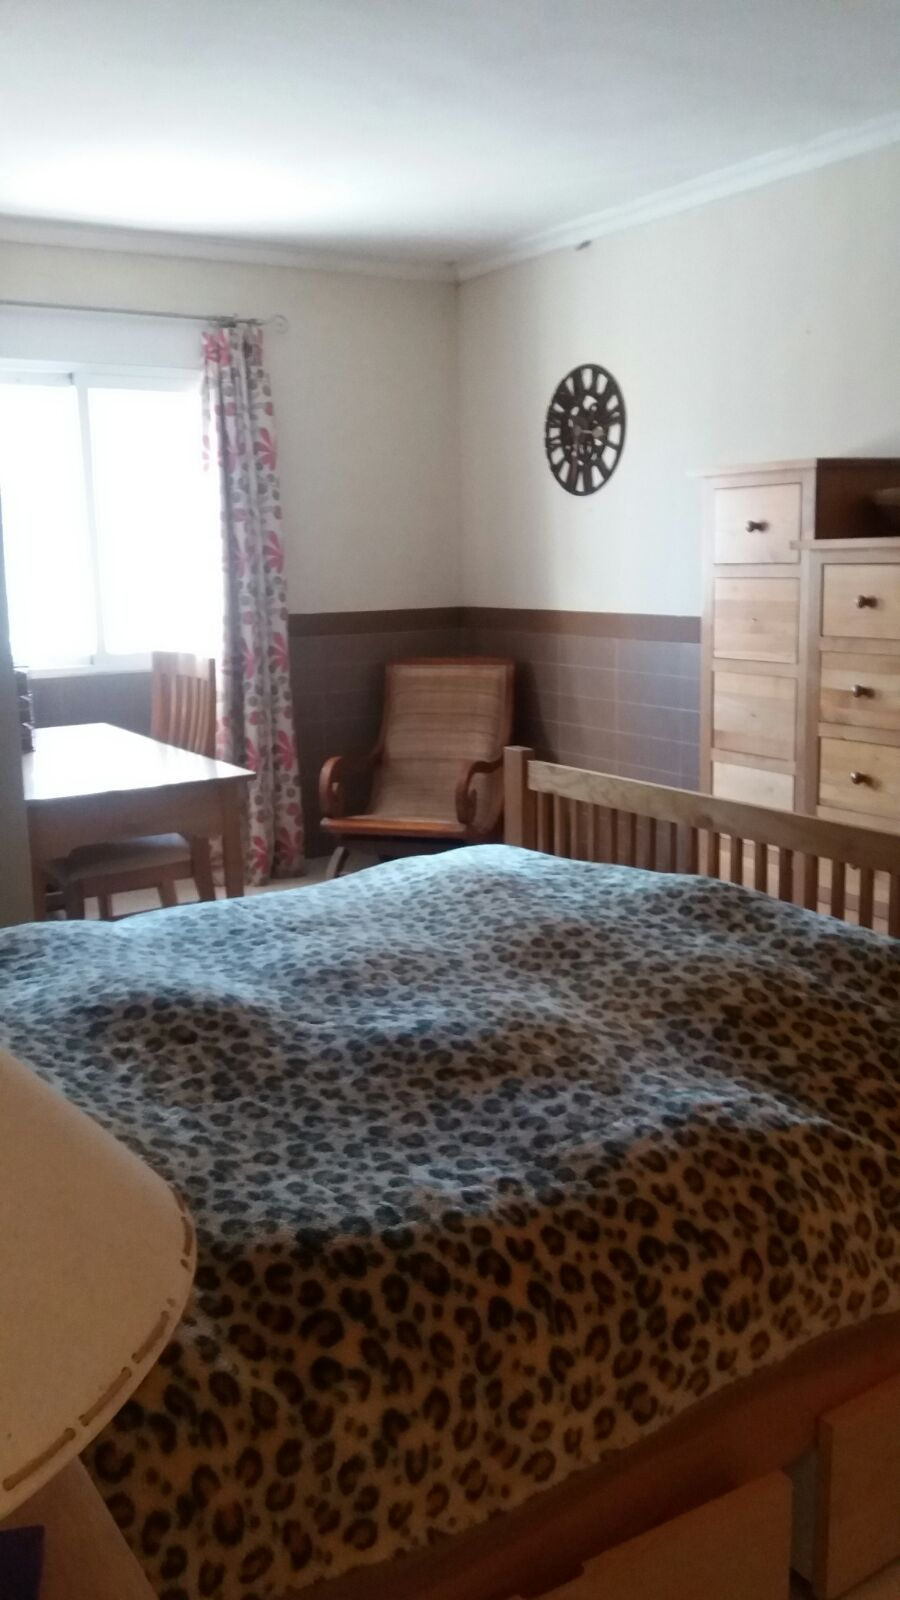 Villa Two Master Bedroom View To Orchard Traditional Spanish Farmhouse Property For Sale Costa Blanca Spain